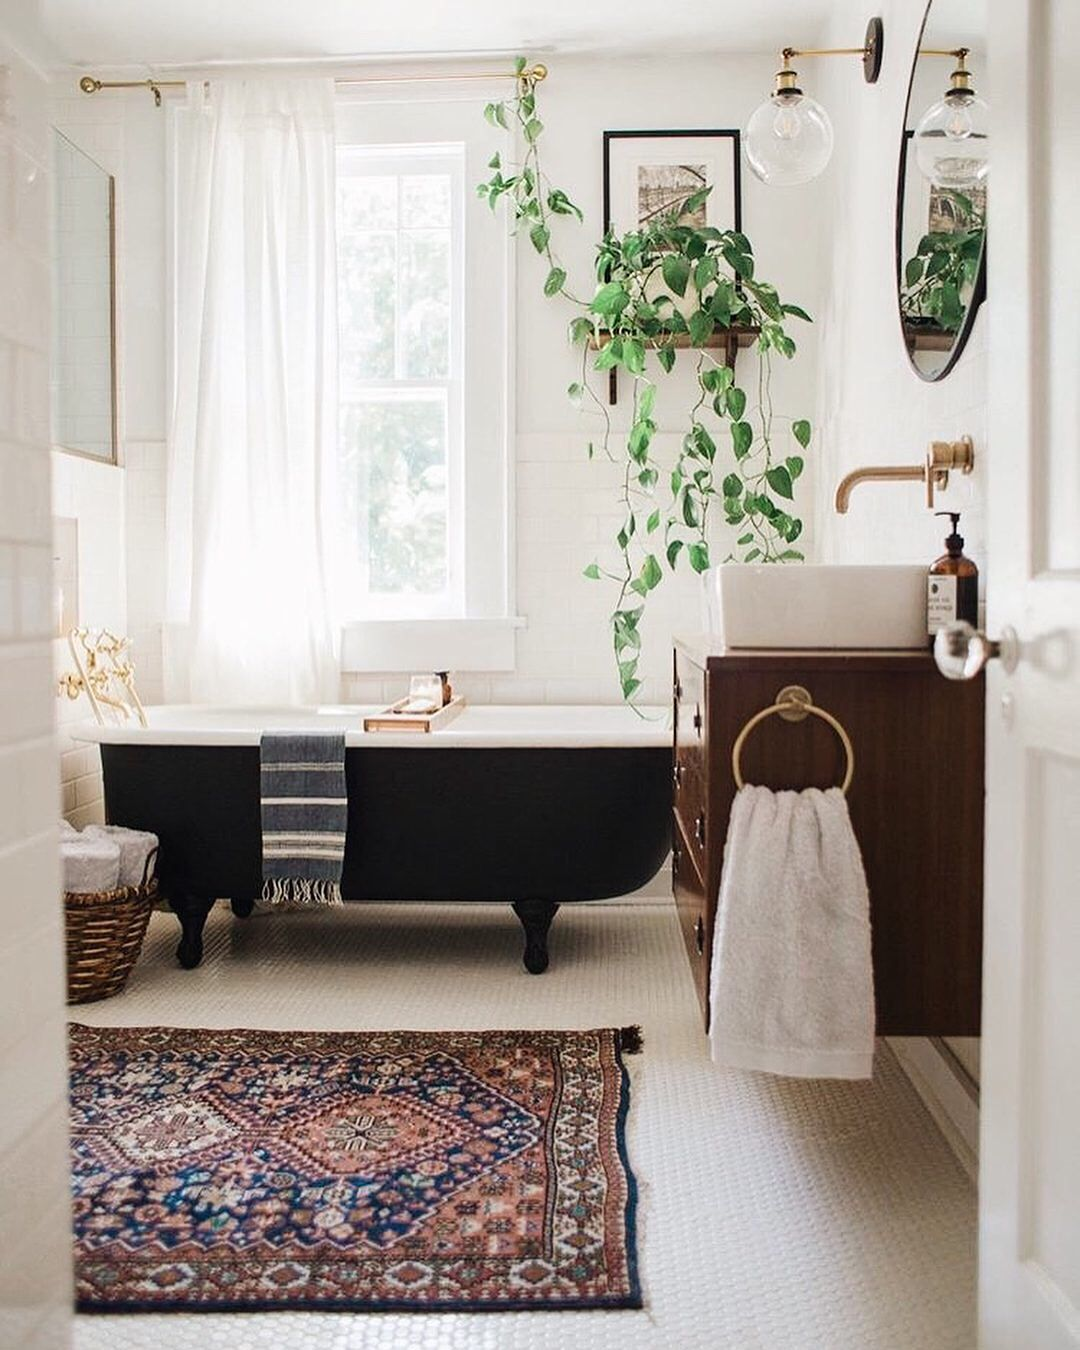 Beautiful Bathroom Chair Rail Specifics Please: Truly One Of The Most Beautiful Bathroom Renovations We've